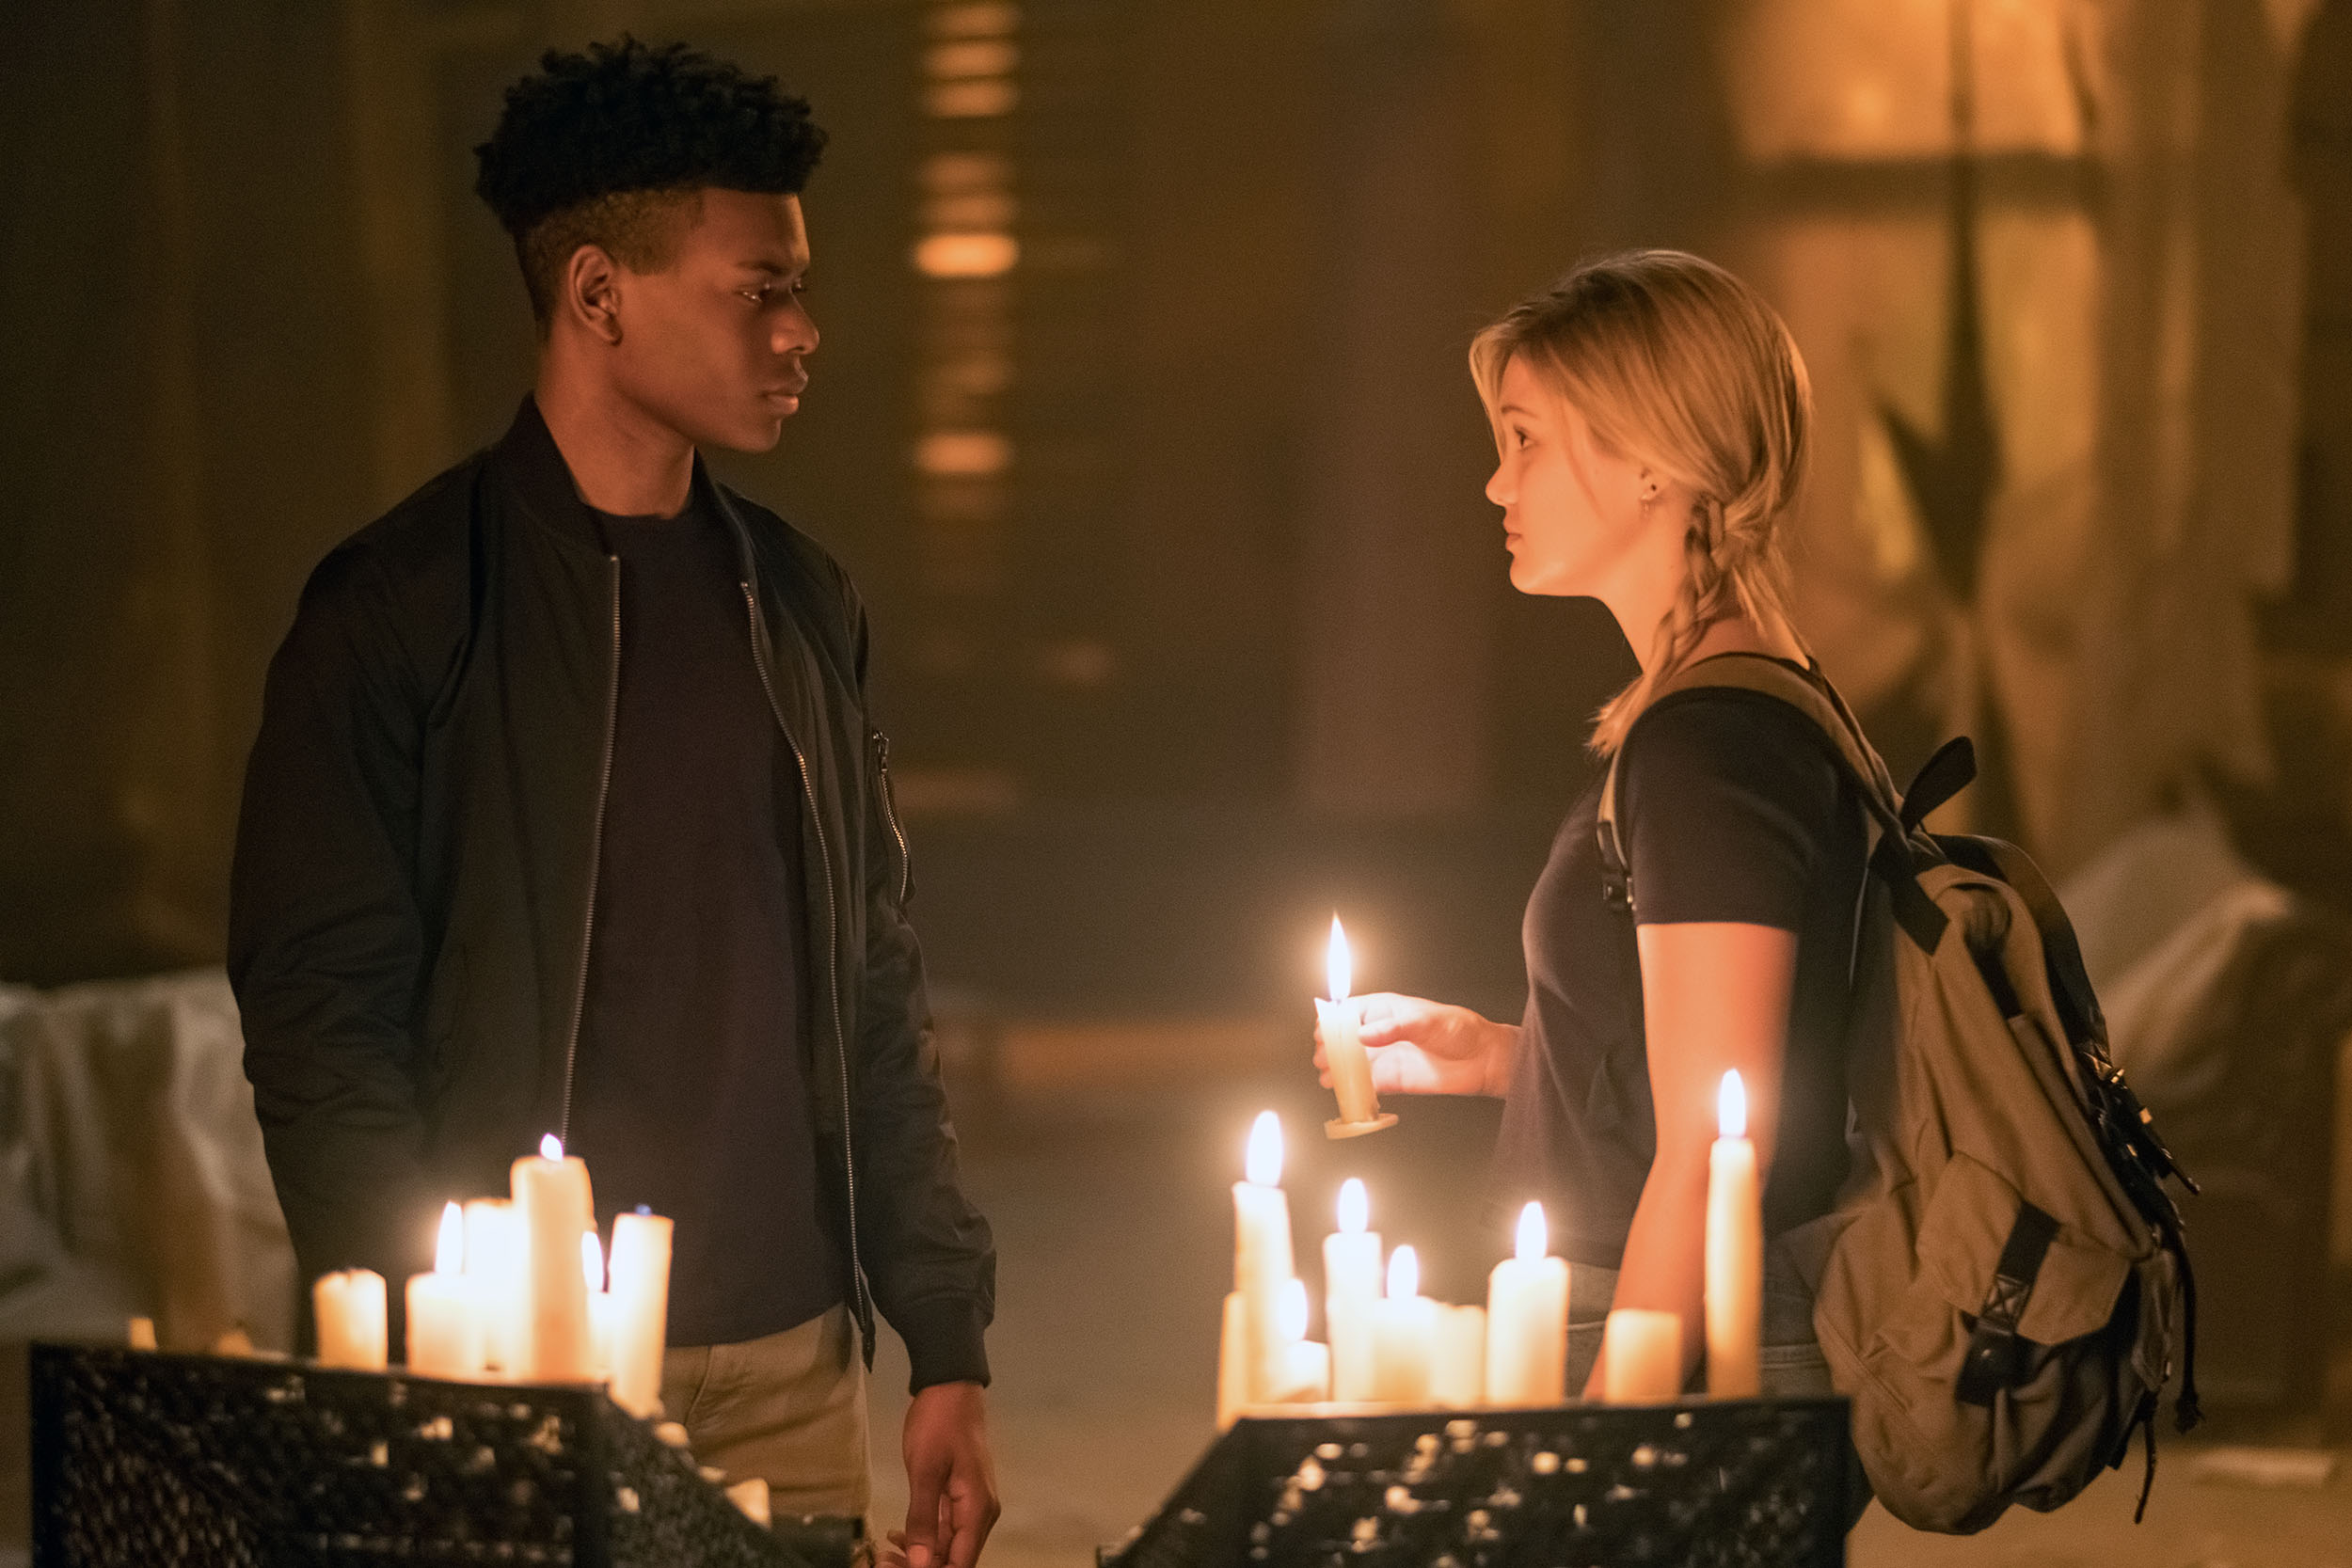 Aubrey Joseph as Tyrone Johnson (Cloak), Olivia Holt as Tandy Bowen (Dagger)  Ph: © Marvel/Alfonso Bresciani